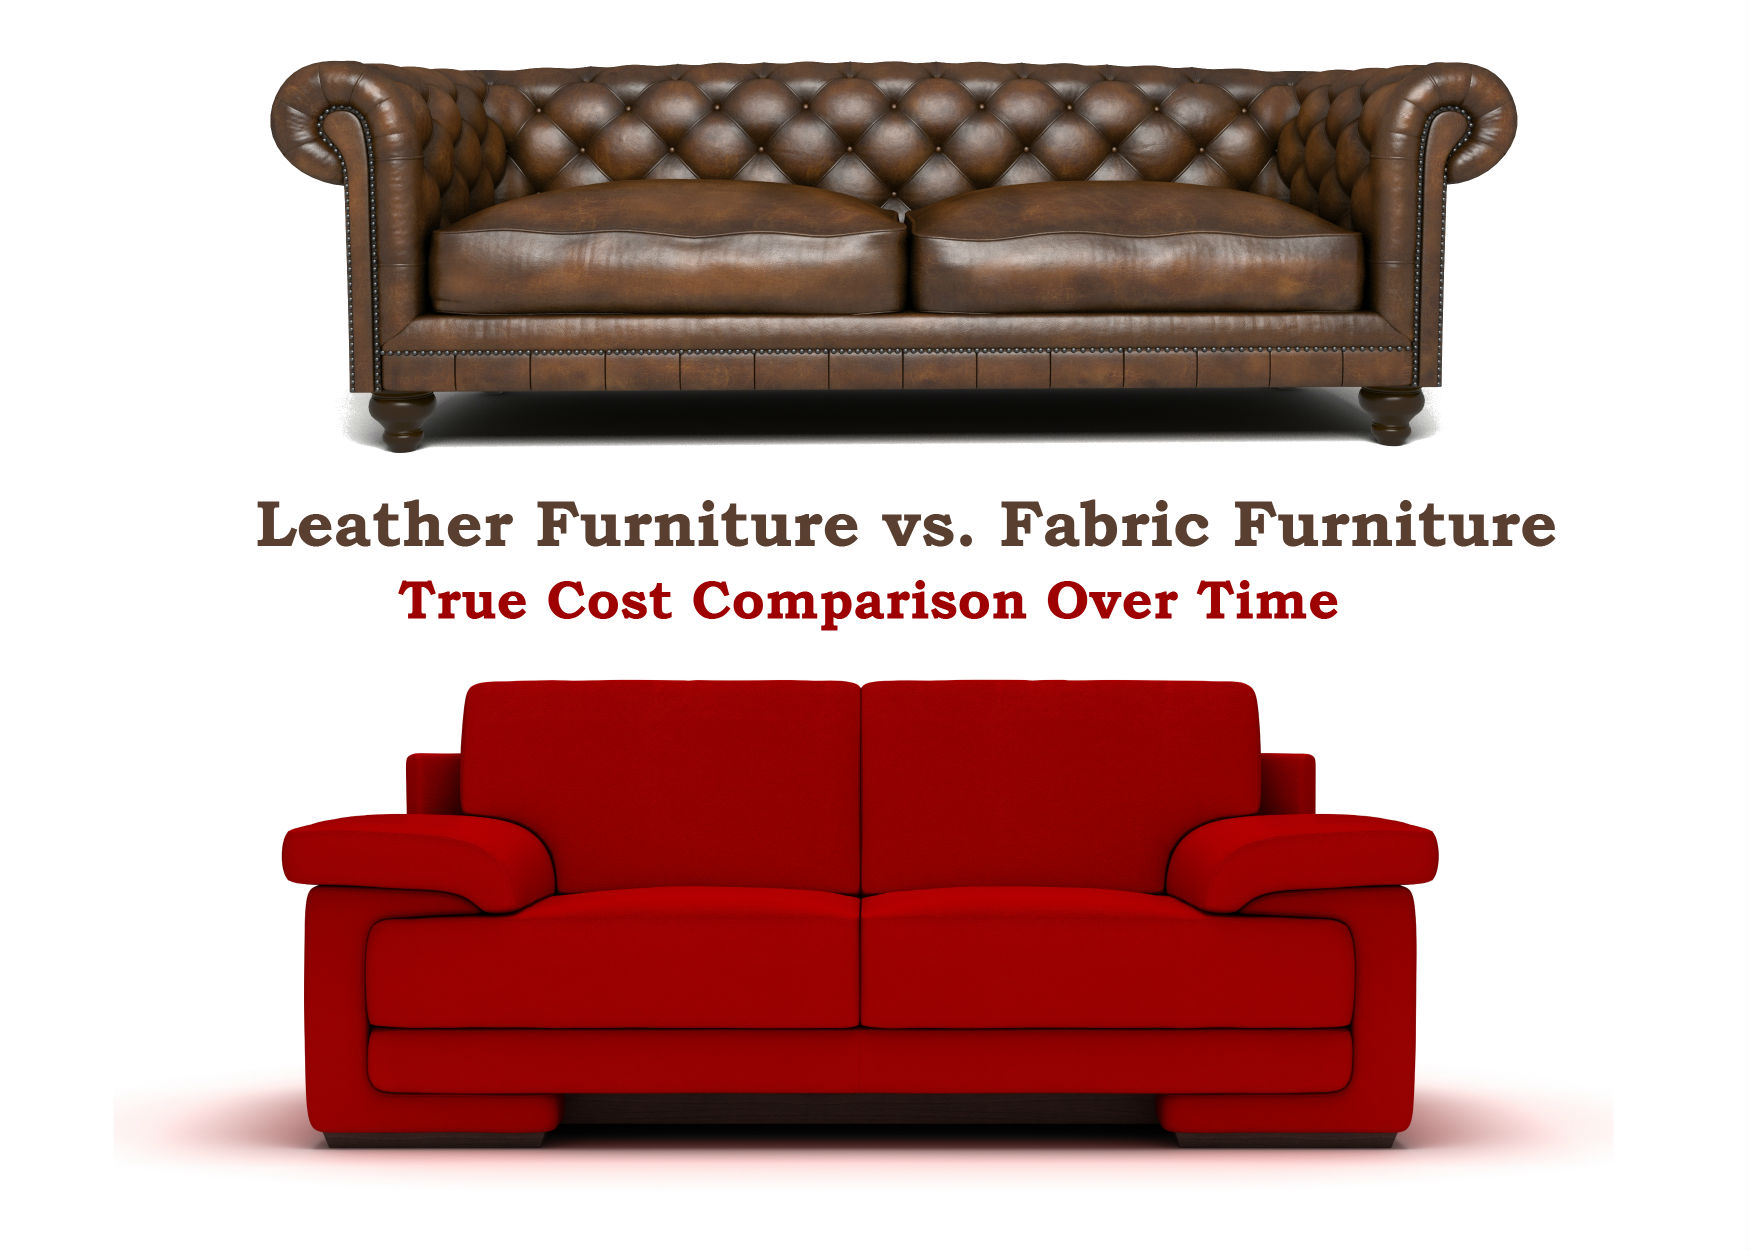 Leather Furniture Vs Fabric True Cost Comparison Of Over Time